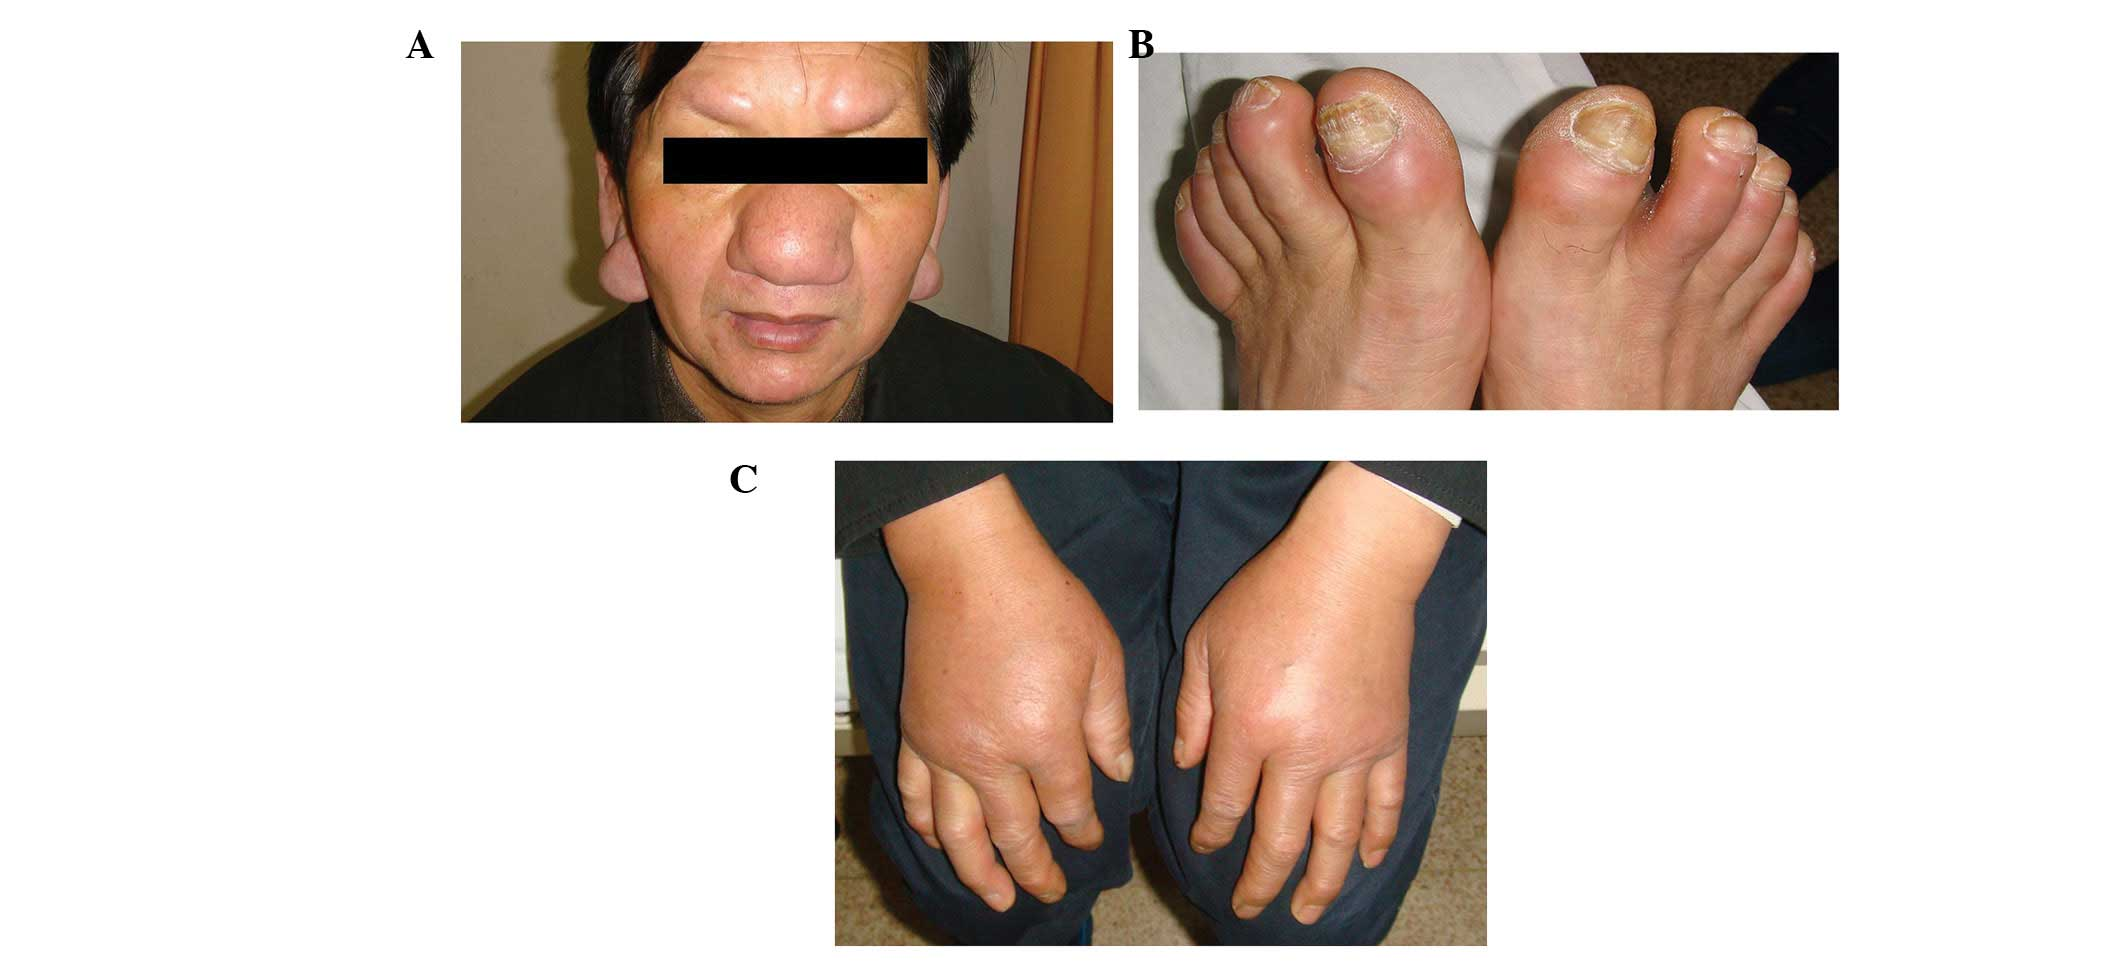 Cutaneous manifestations in a patient with chronic